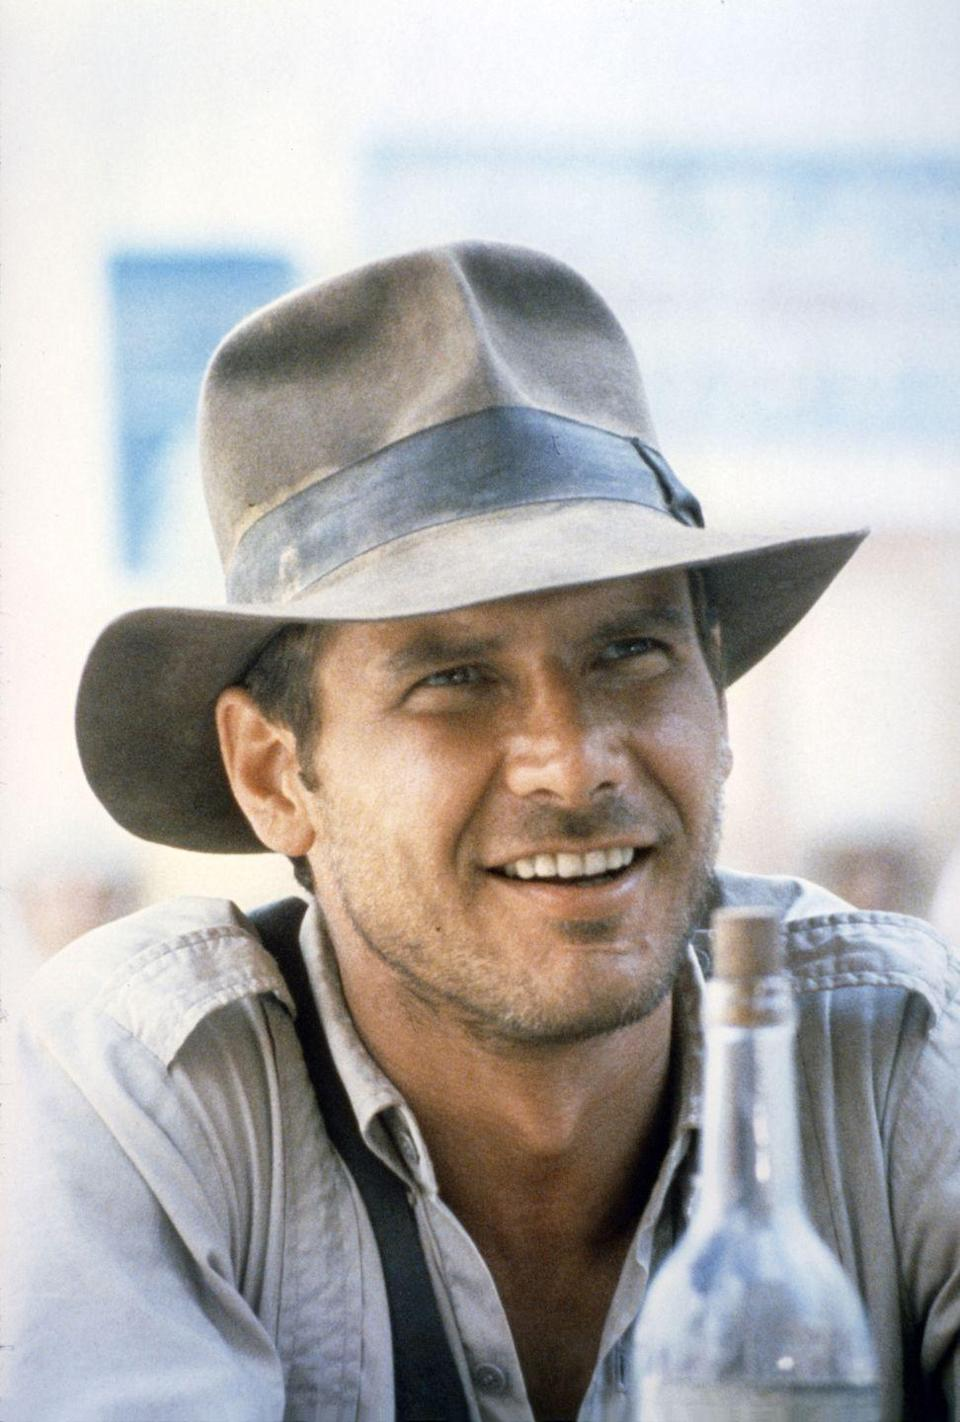 <p>Ford on the set of <em>Raiders of the Lost Ark</em>.</p>